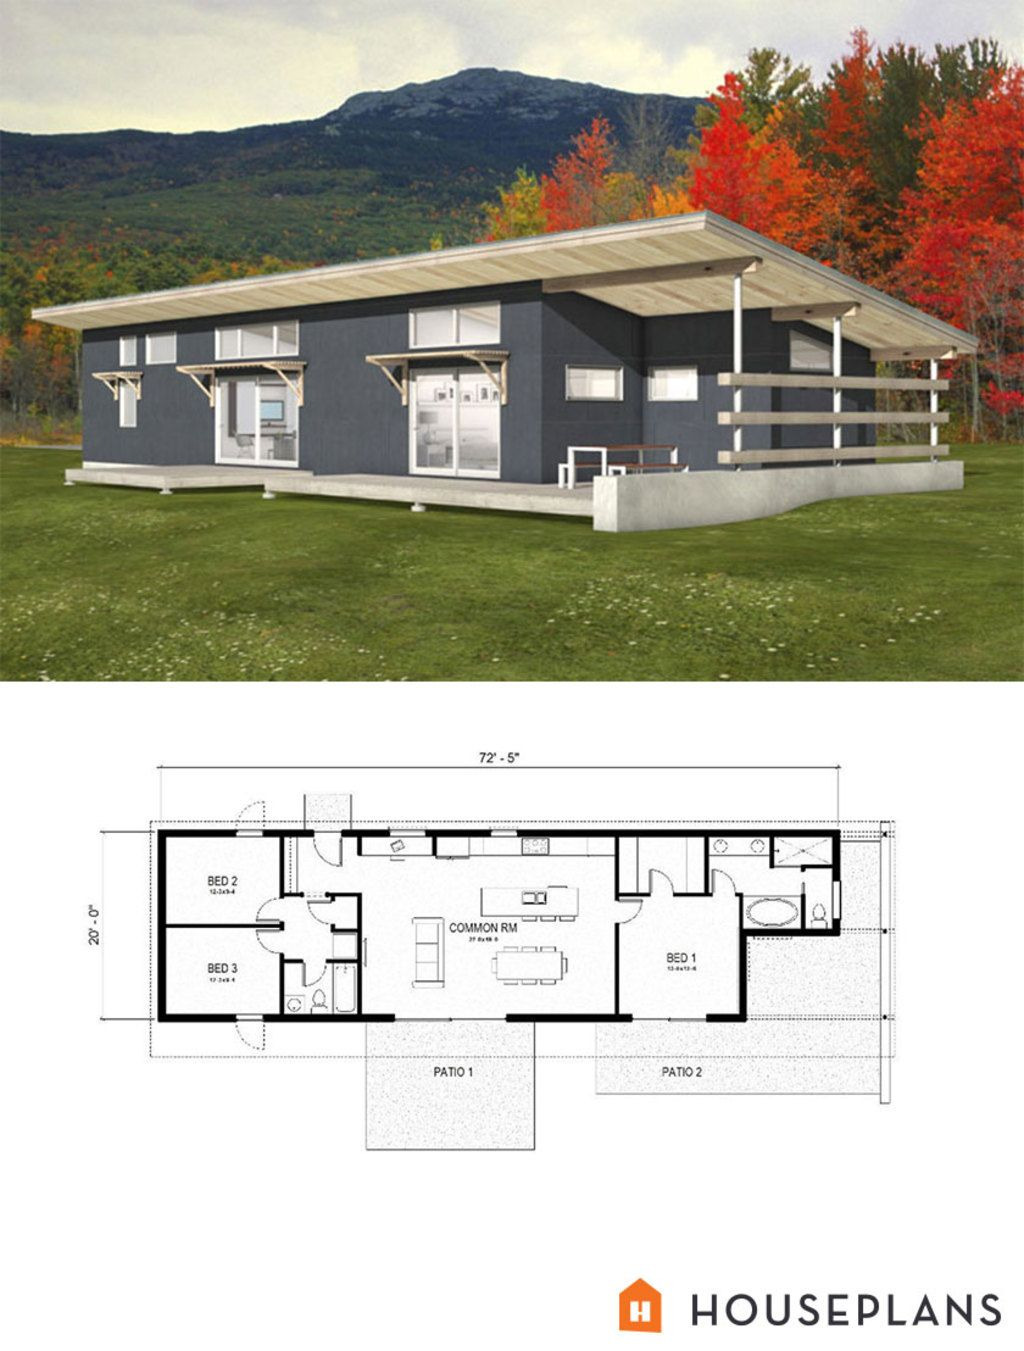 Small Efficient Home Designs Awesome Modern Style House Plan 3 Beds 2 Baths 1356 Sq Ft Plan